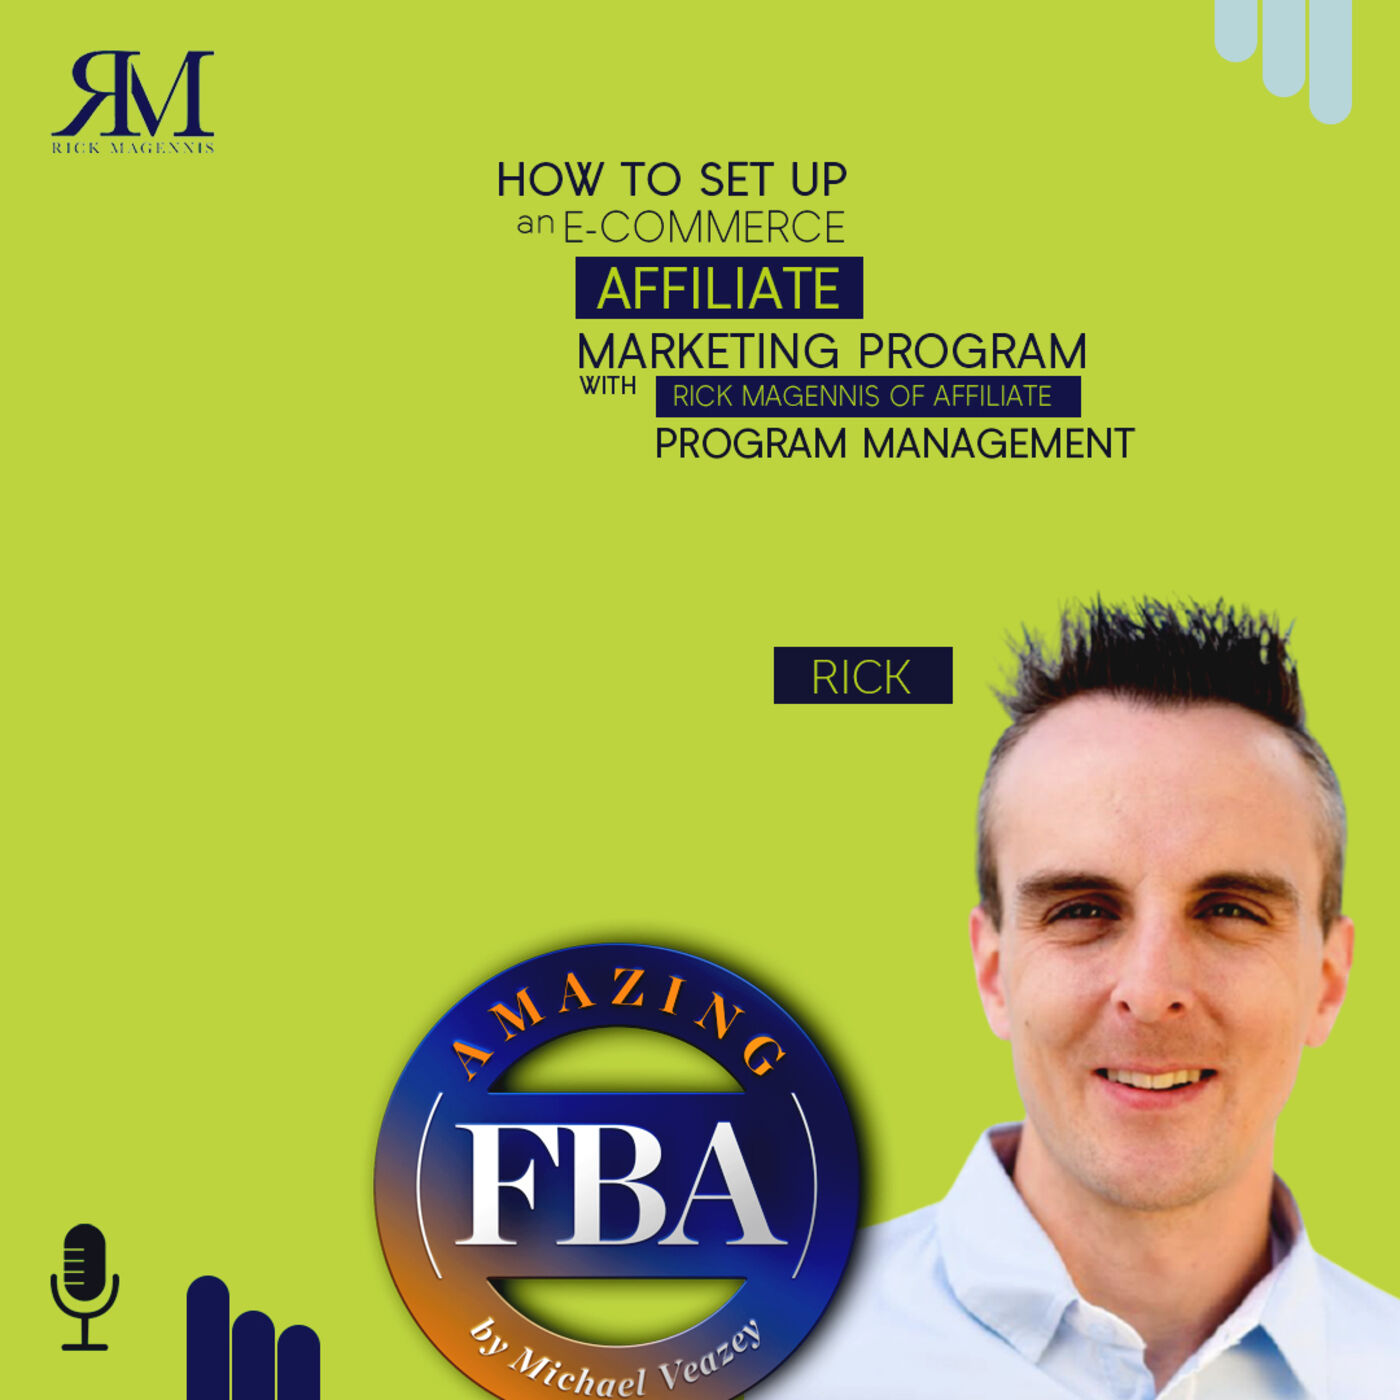 How to Set up an E-Commerce Affiliate Marketing Program with Rick Magennis of Affiliate Program Management